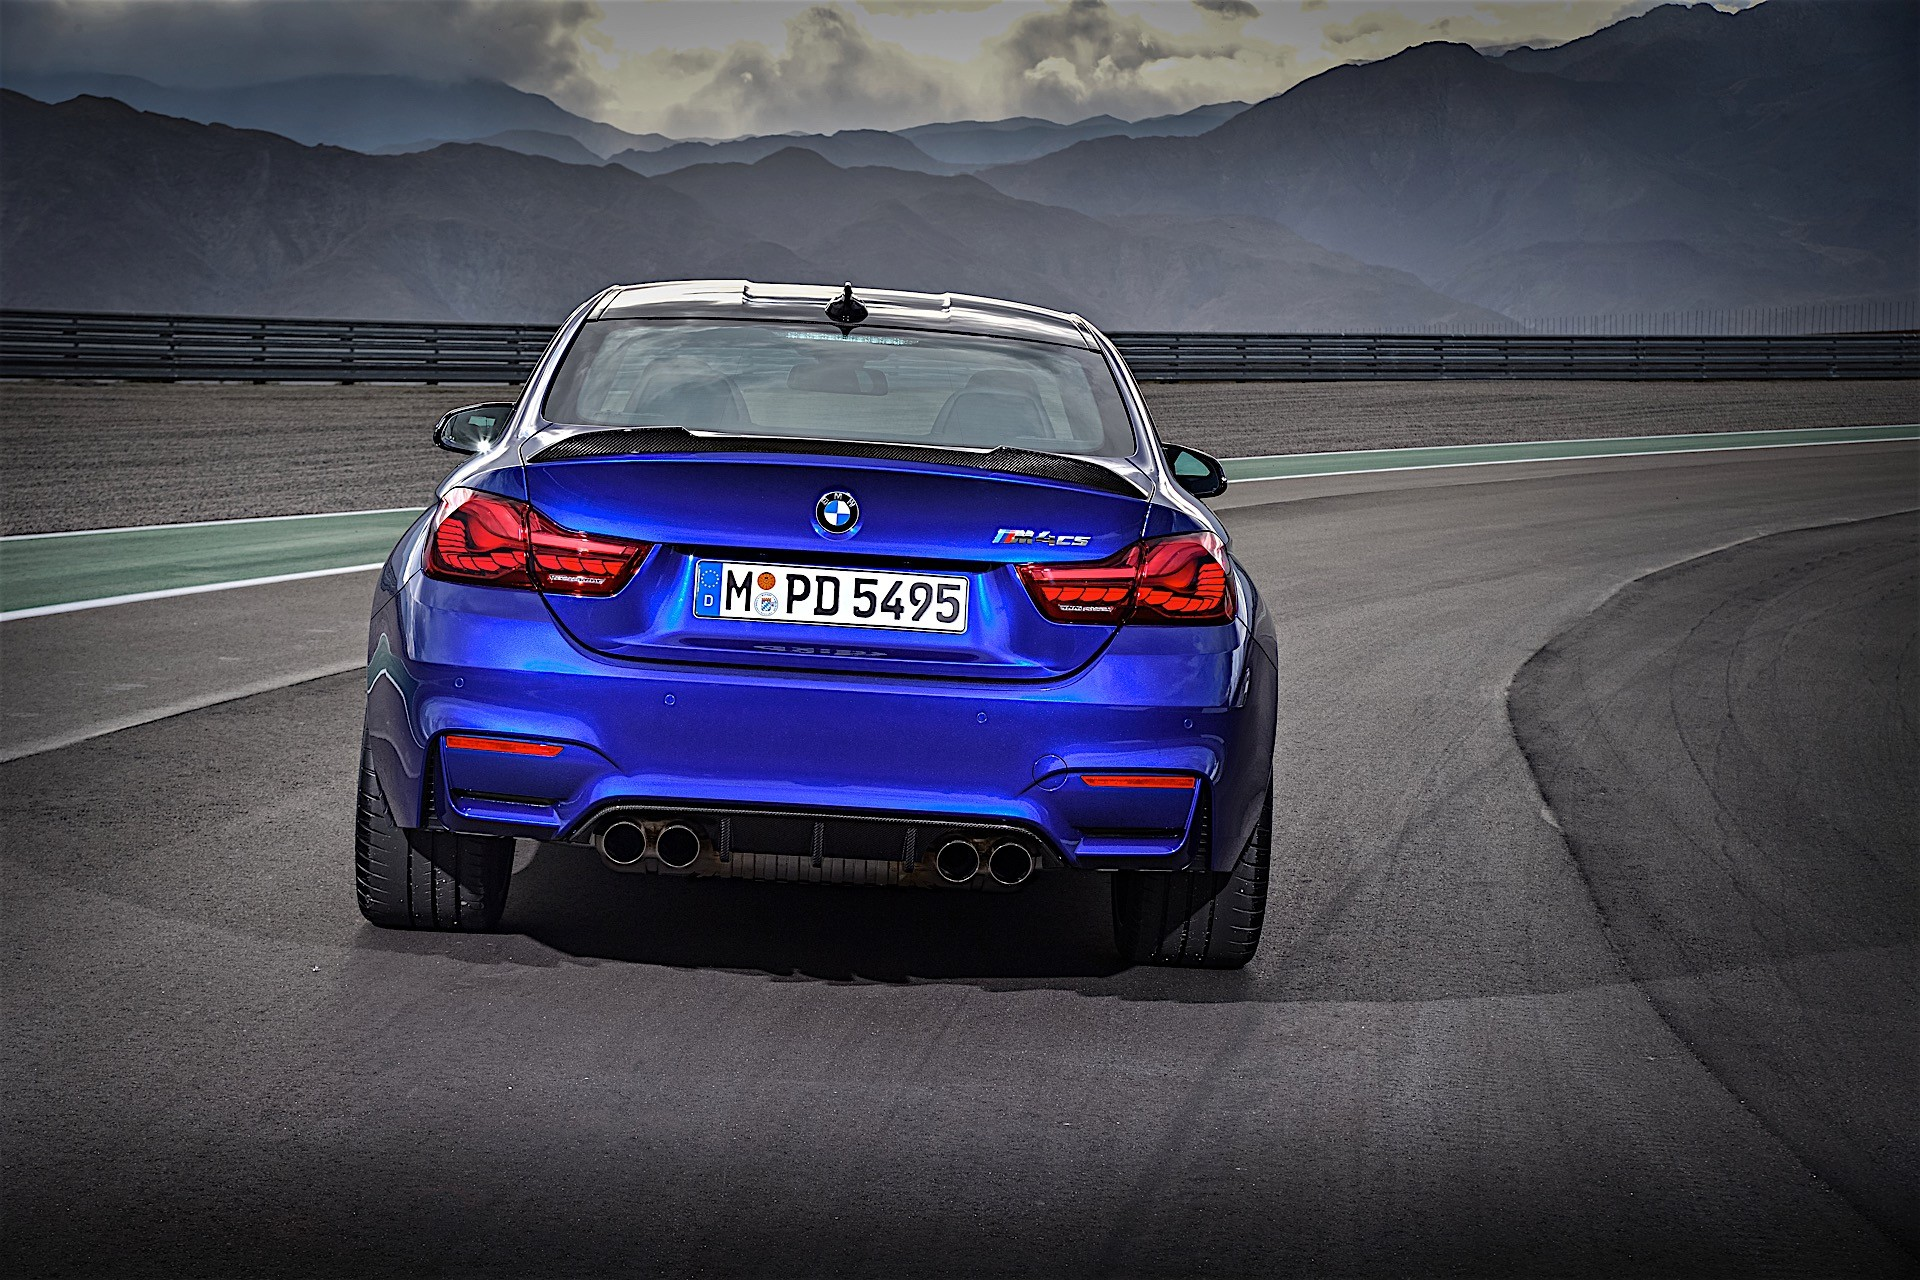 Bmw M4 Nurburgring Time